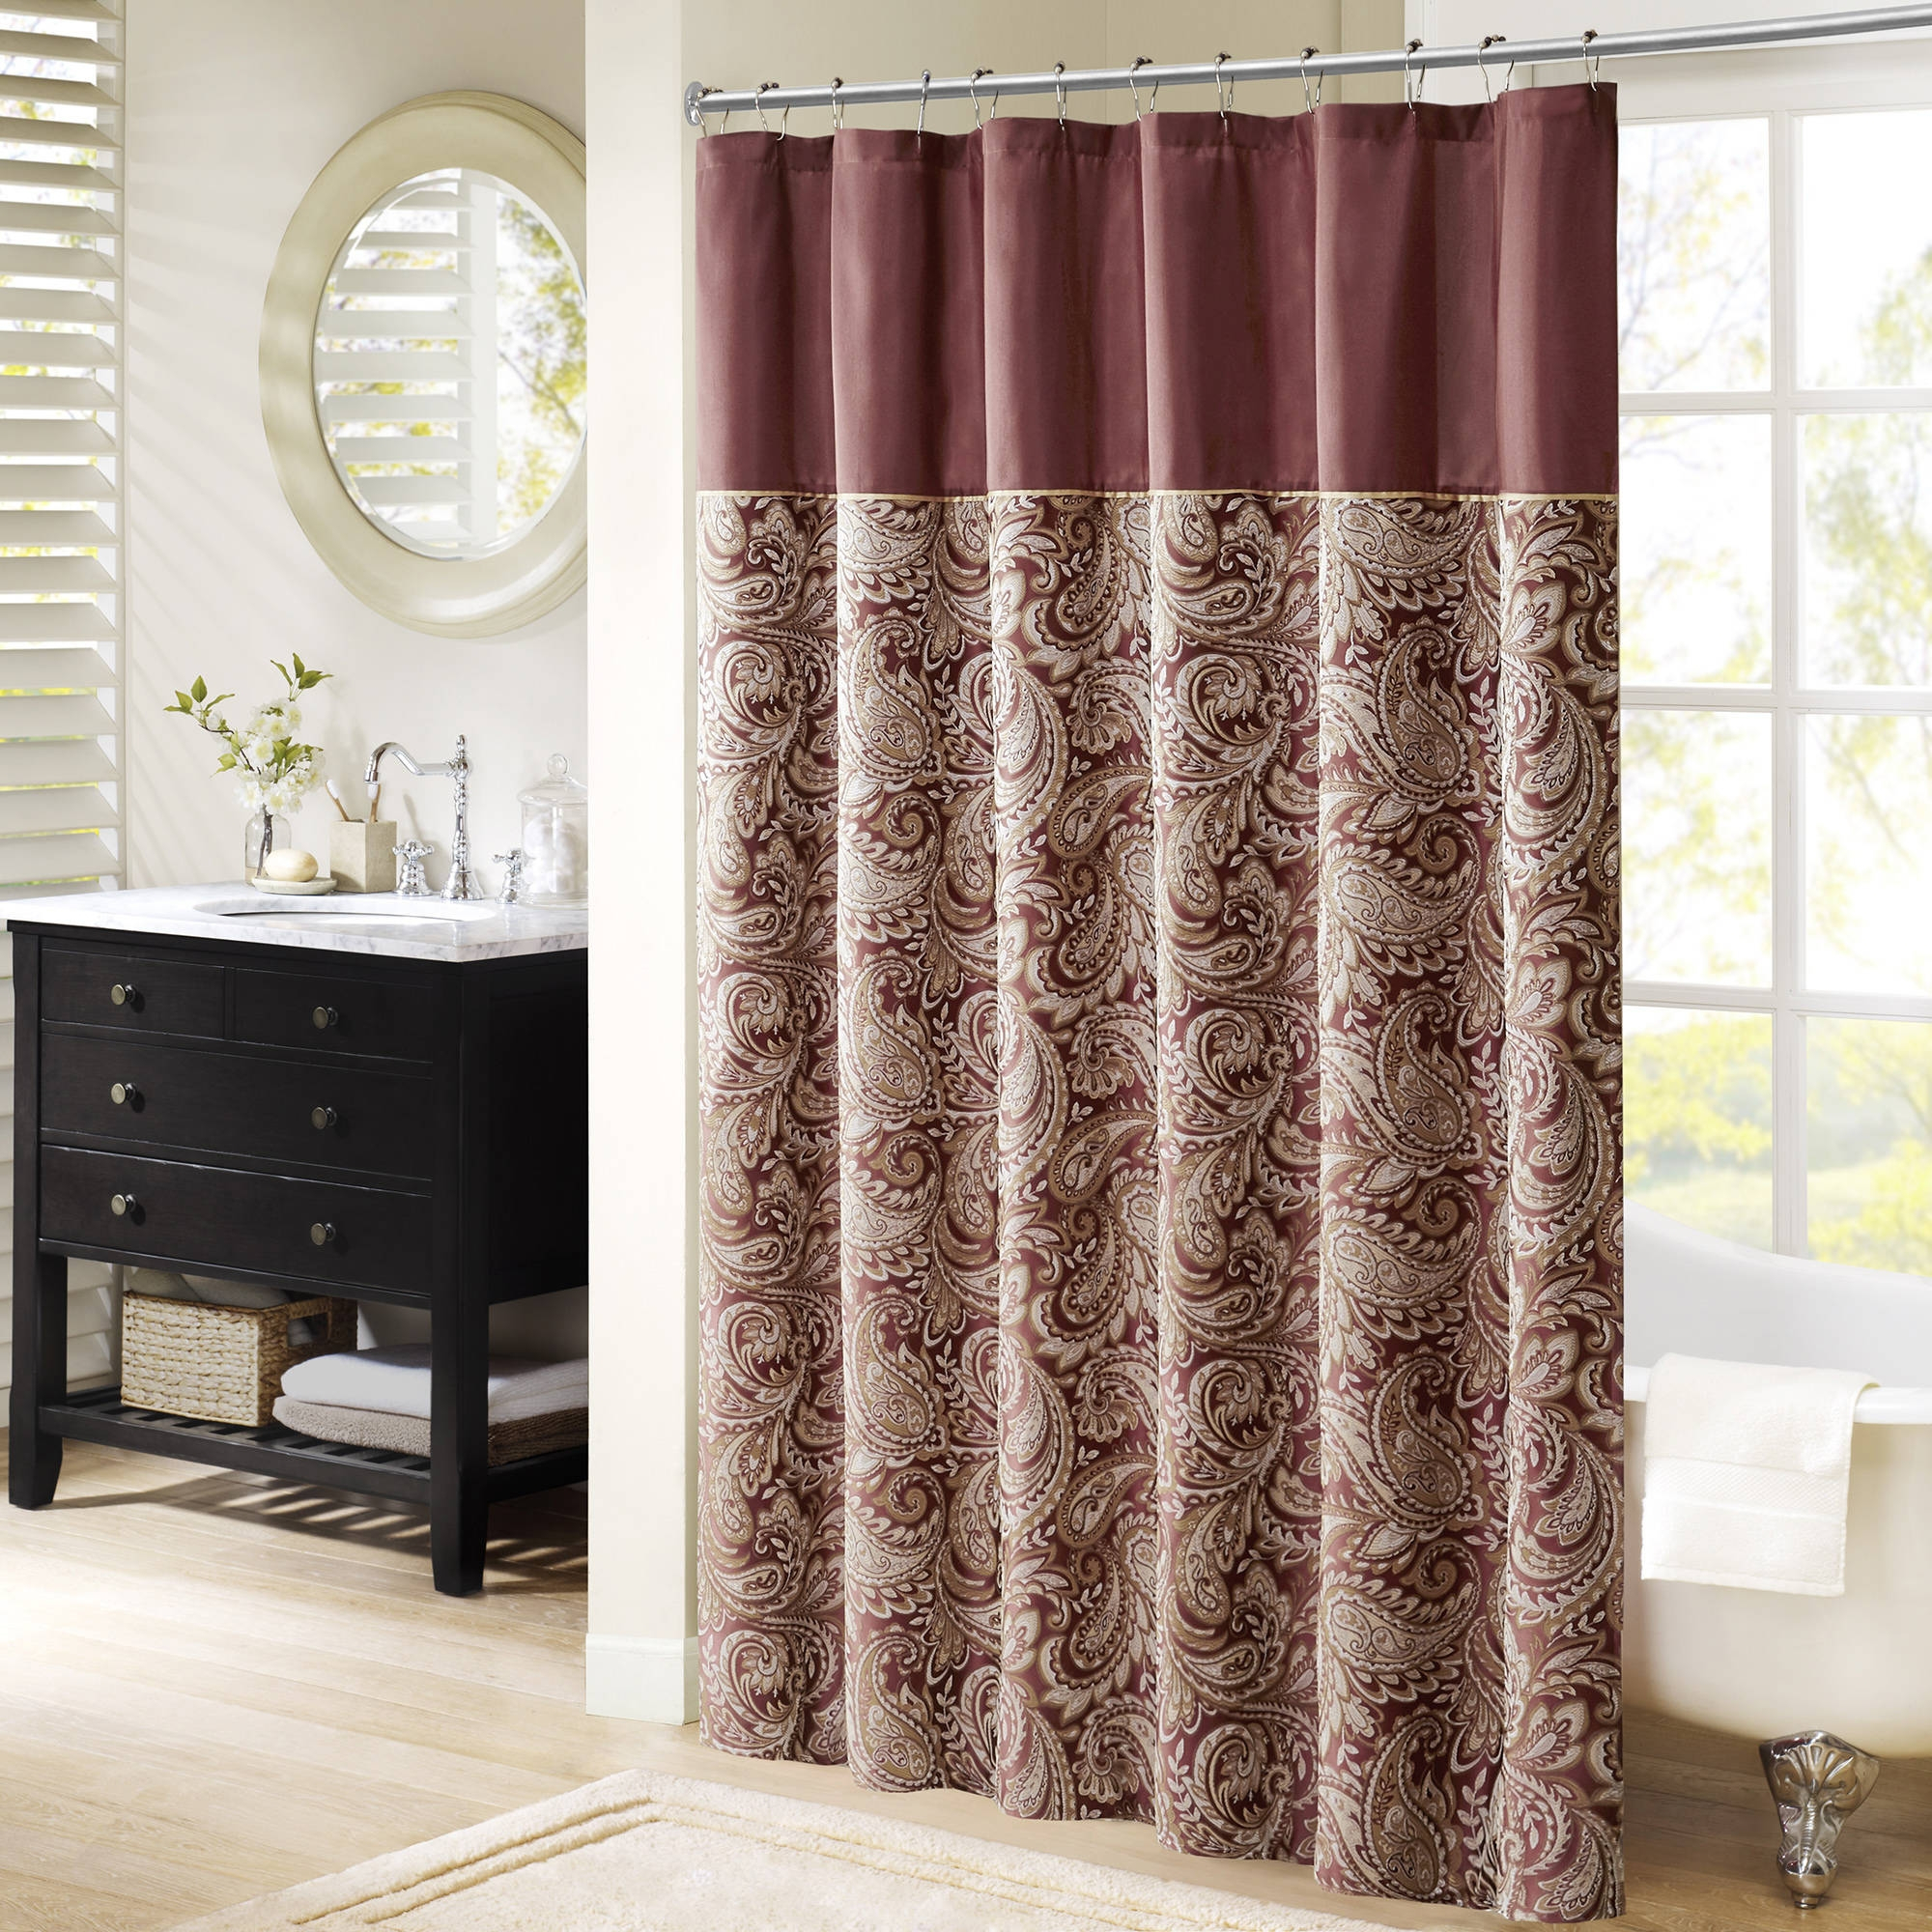 Polyester Shower Curtain Liner Safe Shower Curtain Ideas for dimensions 2000 X 2000